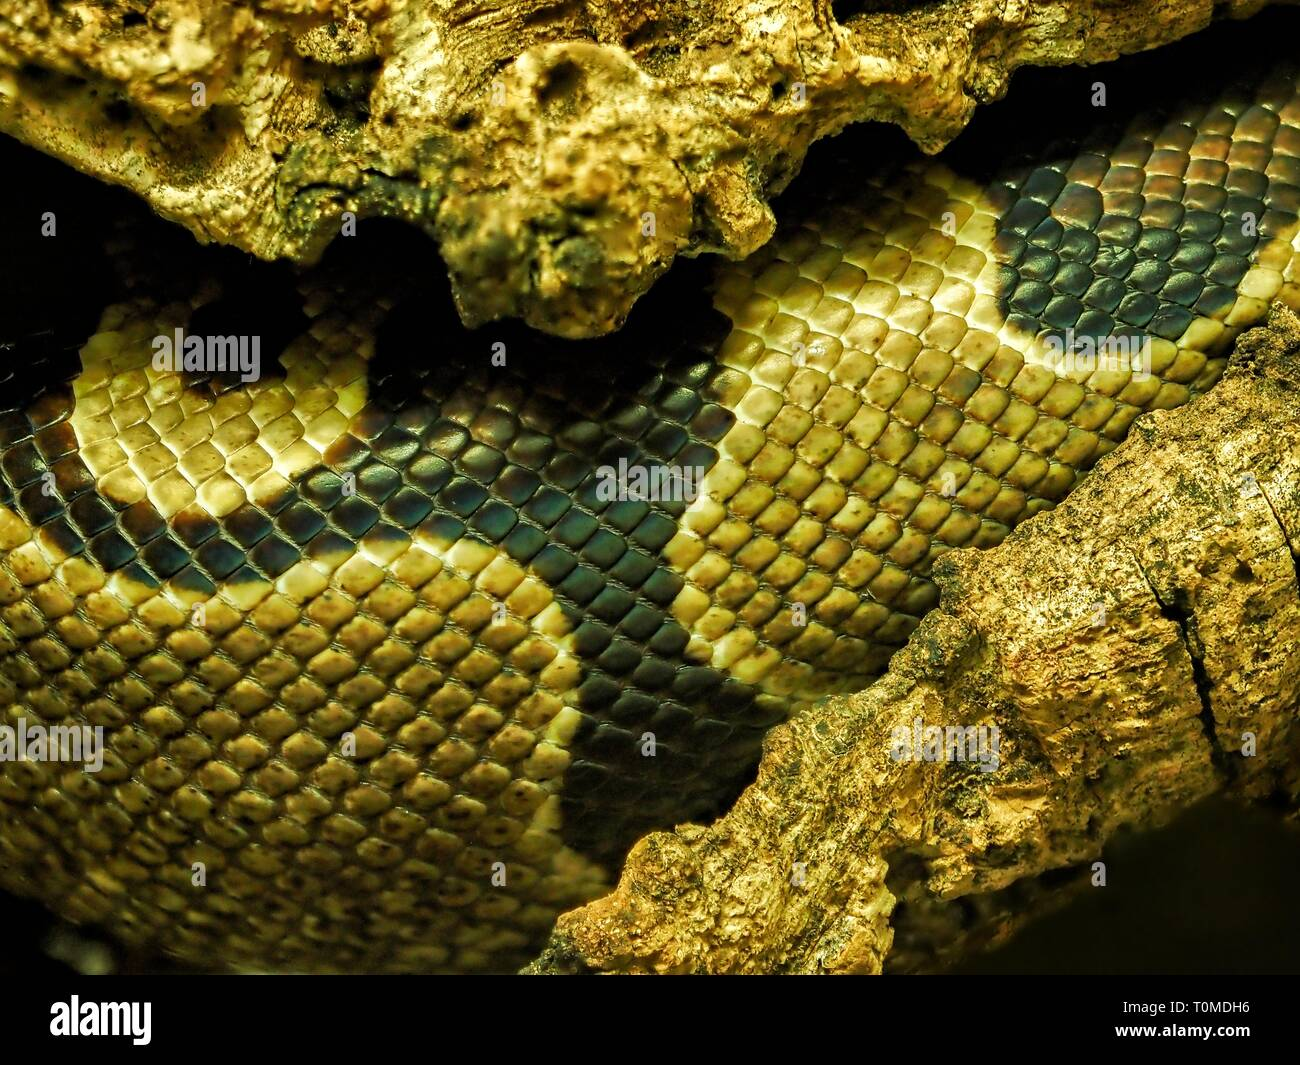 Detail of the skin of a snake with a distinctive pattern and shiny scales. (CTK Photo/Roman Krompolc) Stock Photo